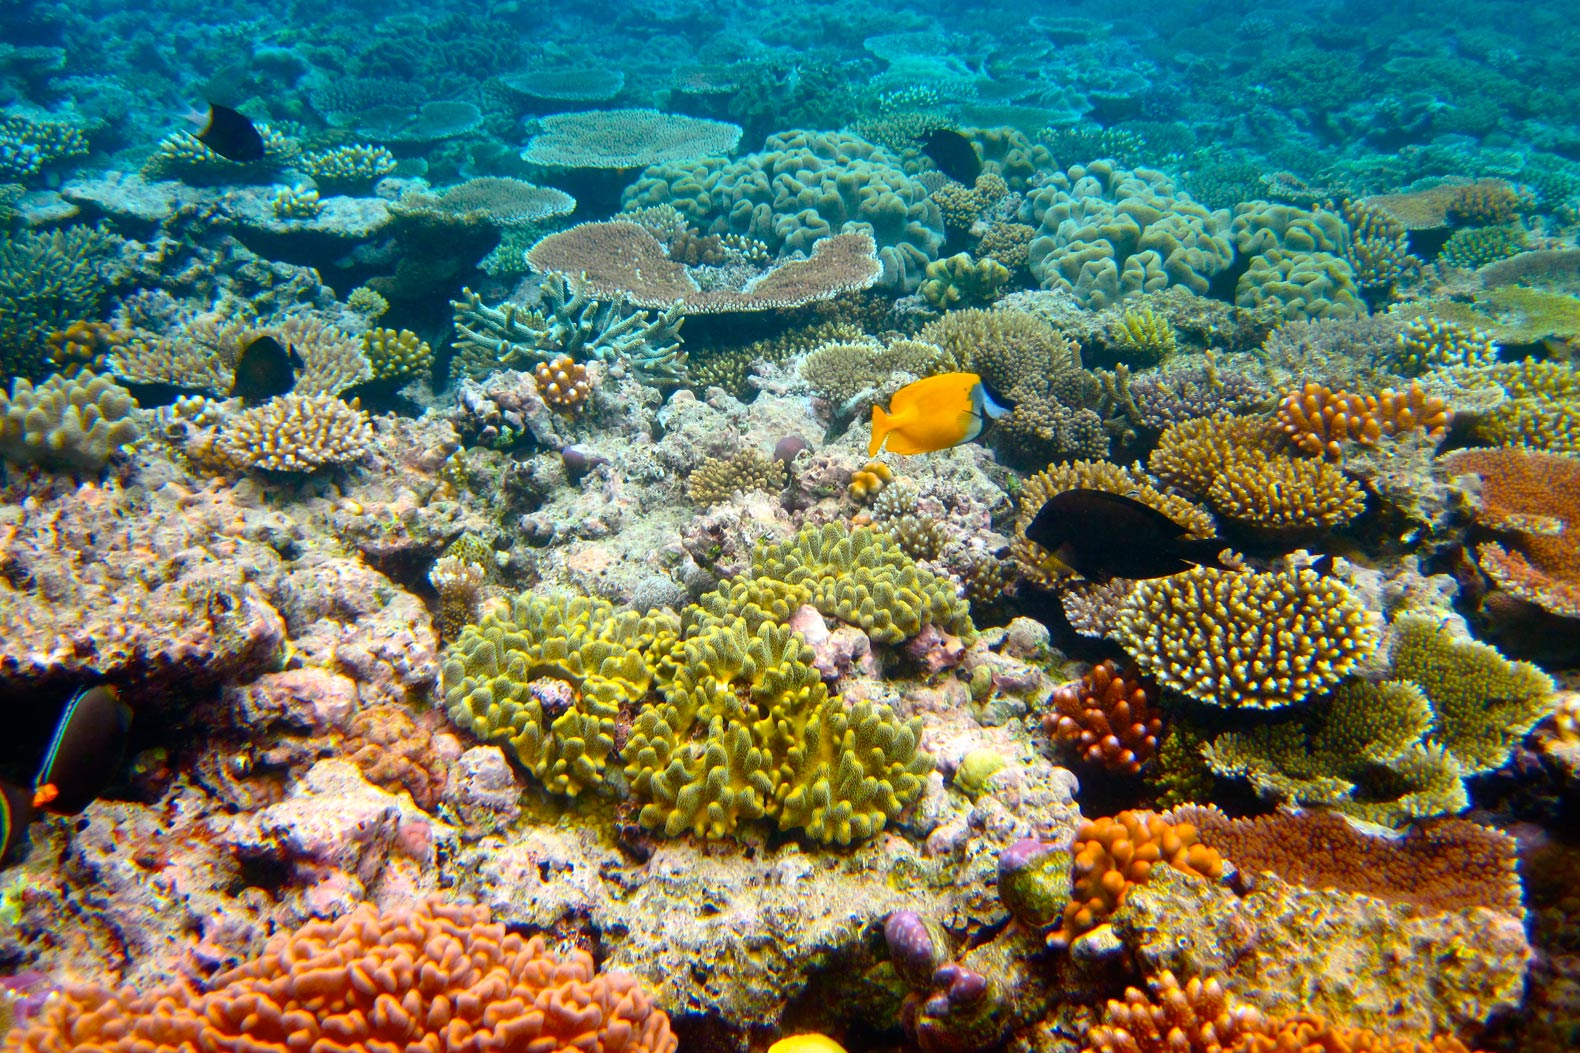 Loophole allows 1M tons of sludge to be dumped on Great Barrier Reef